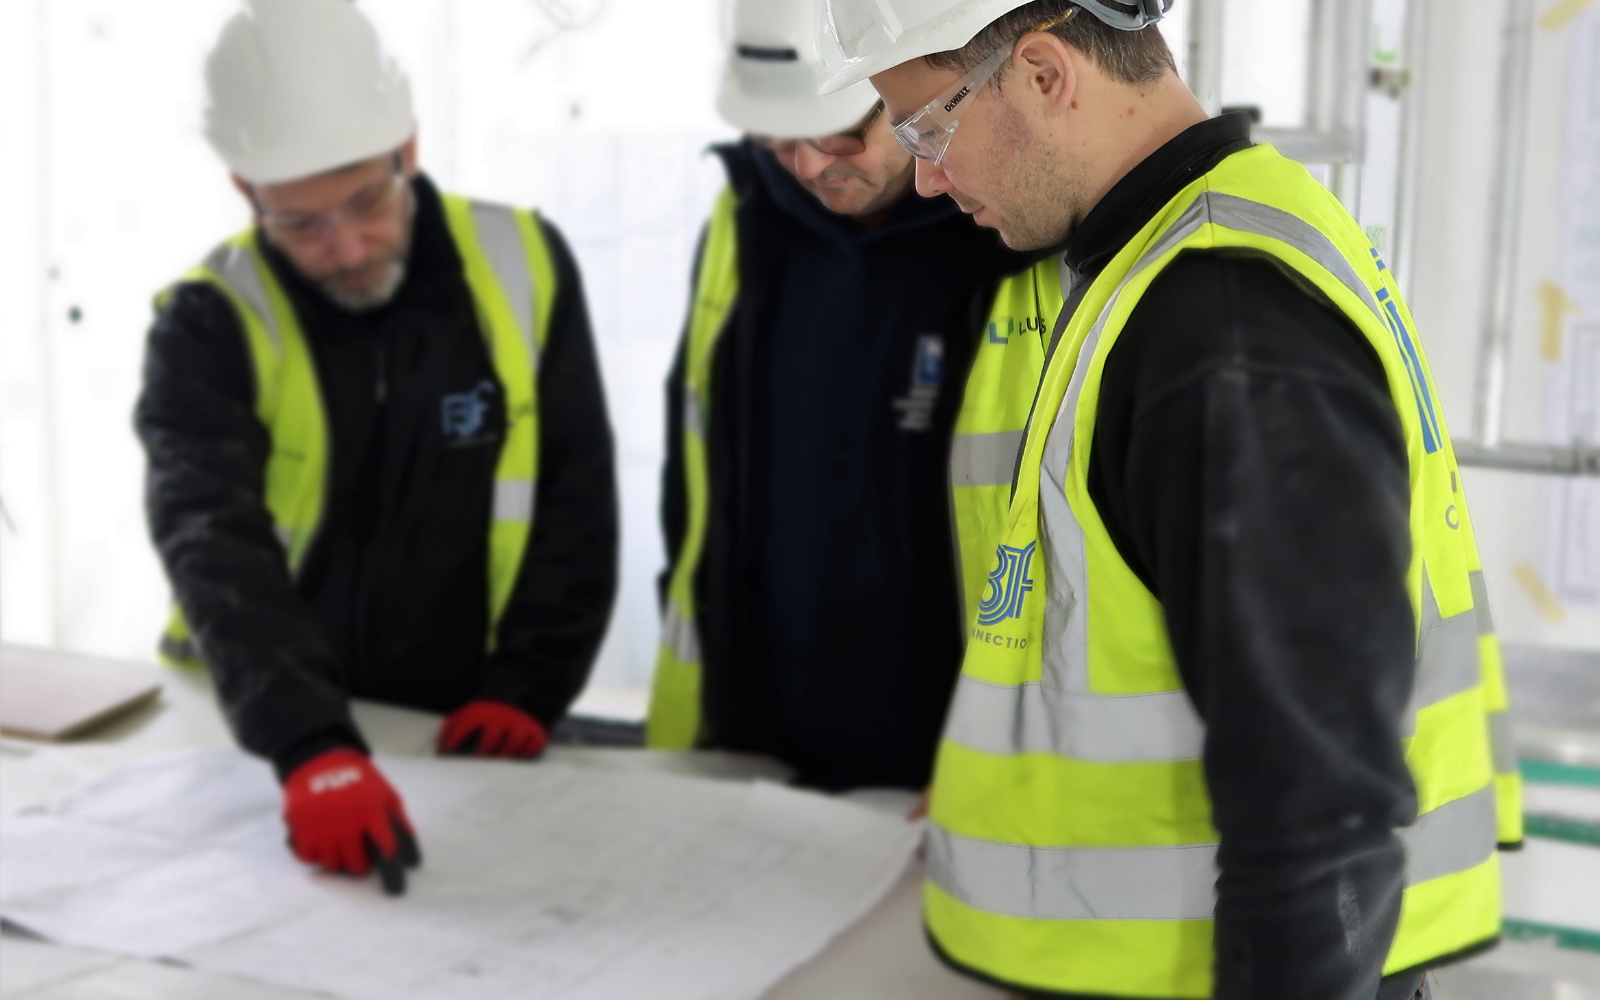 BJF Construction workers on site looking at drawings